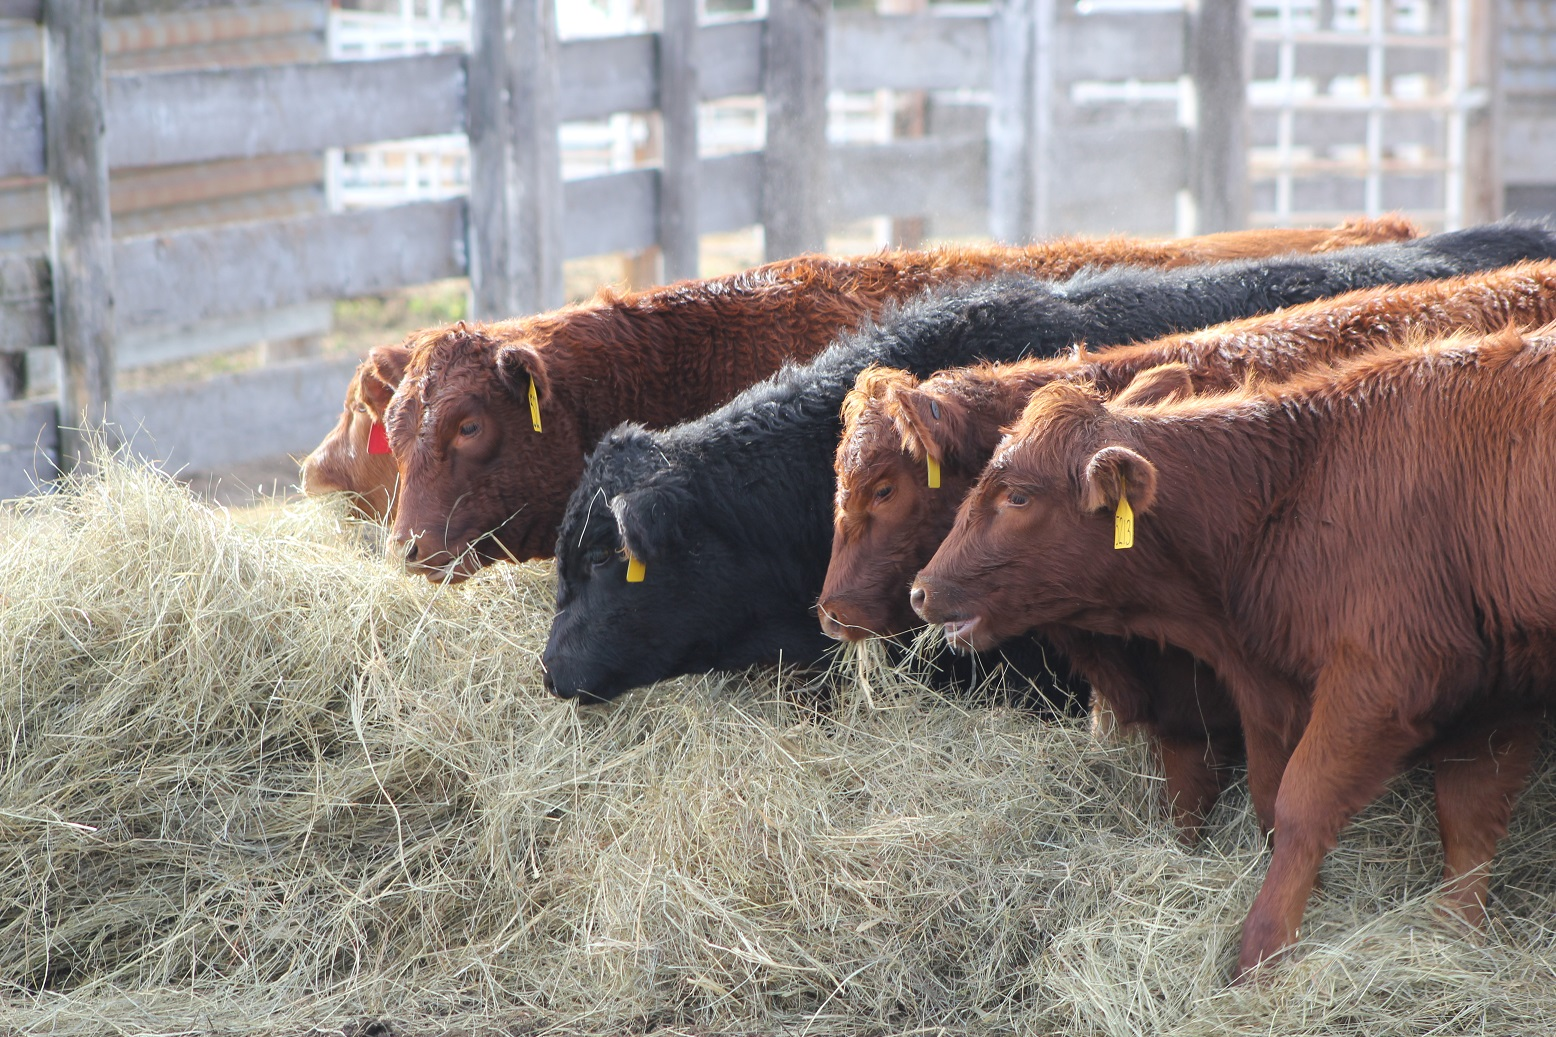 Group of cows eating hay